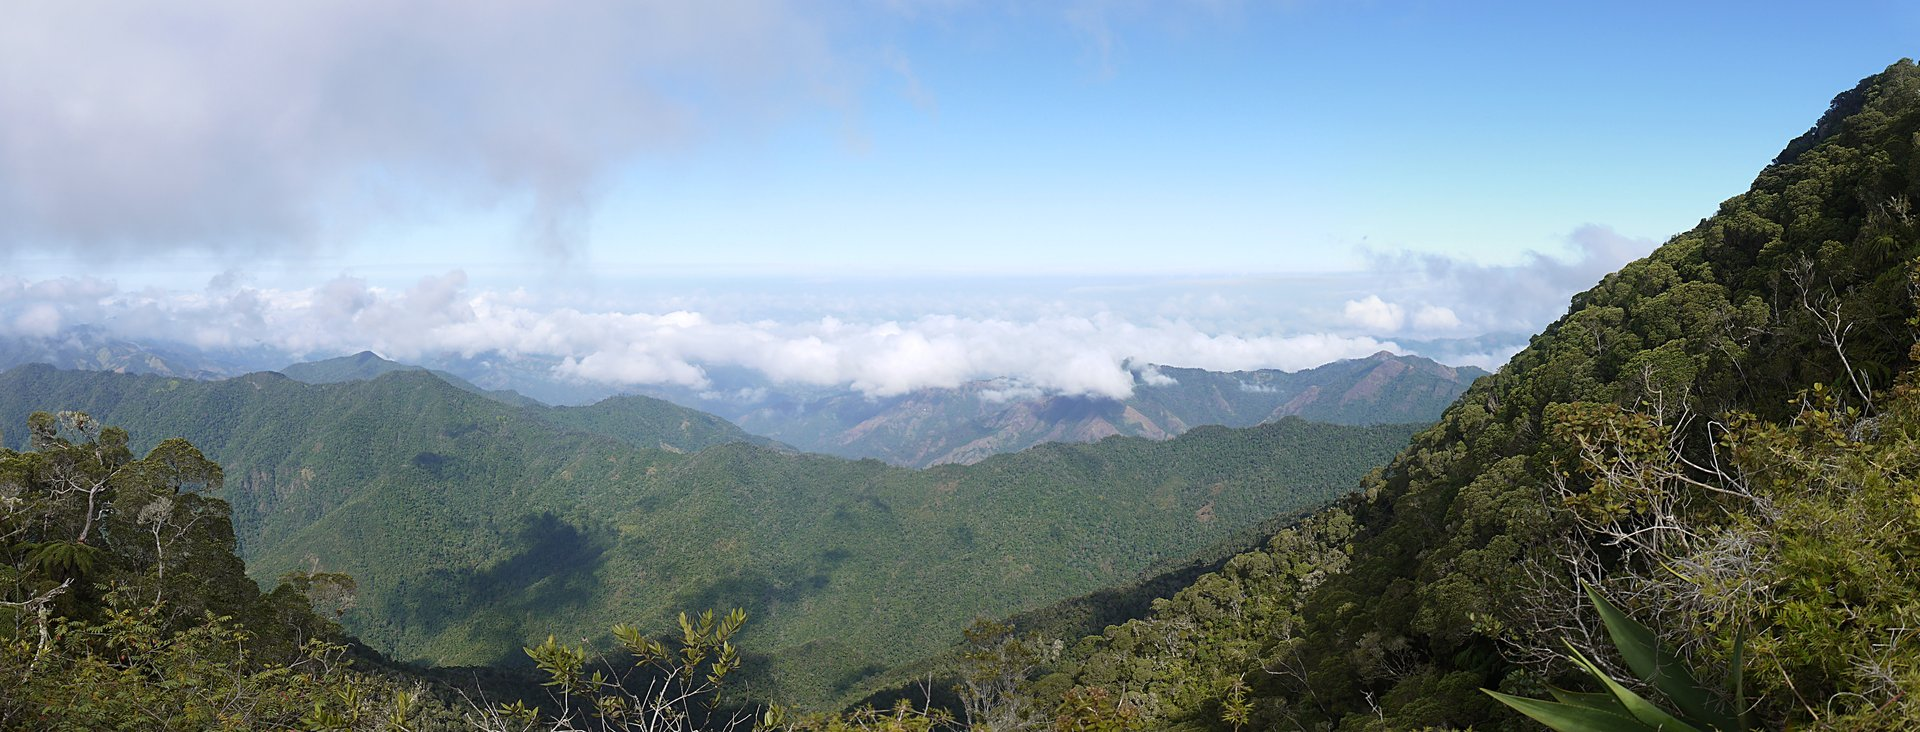 View of the Sierra Maestra and Parque Nacional Turquino 2020